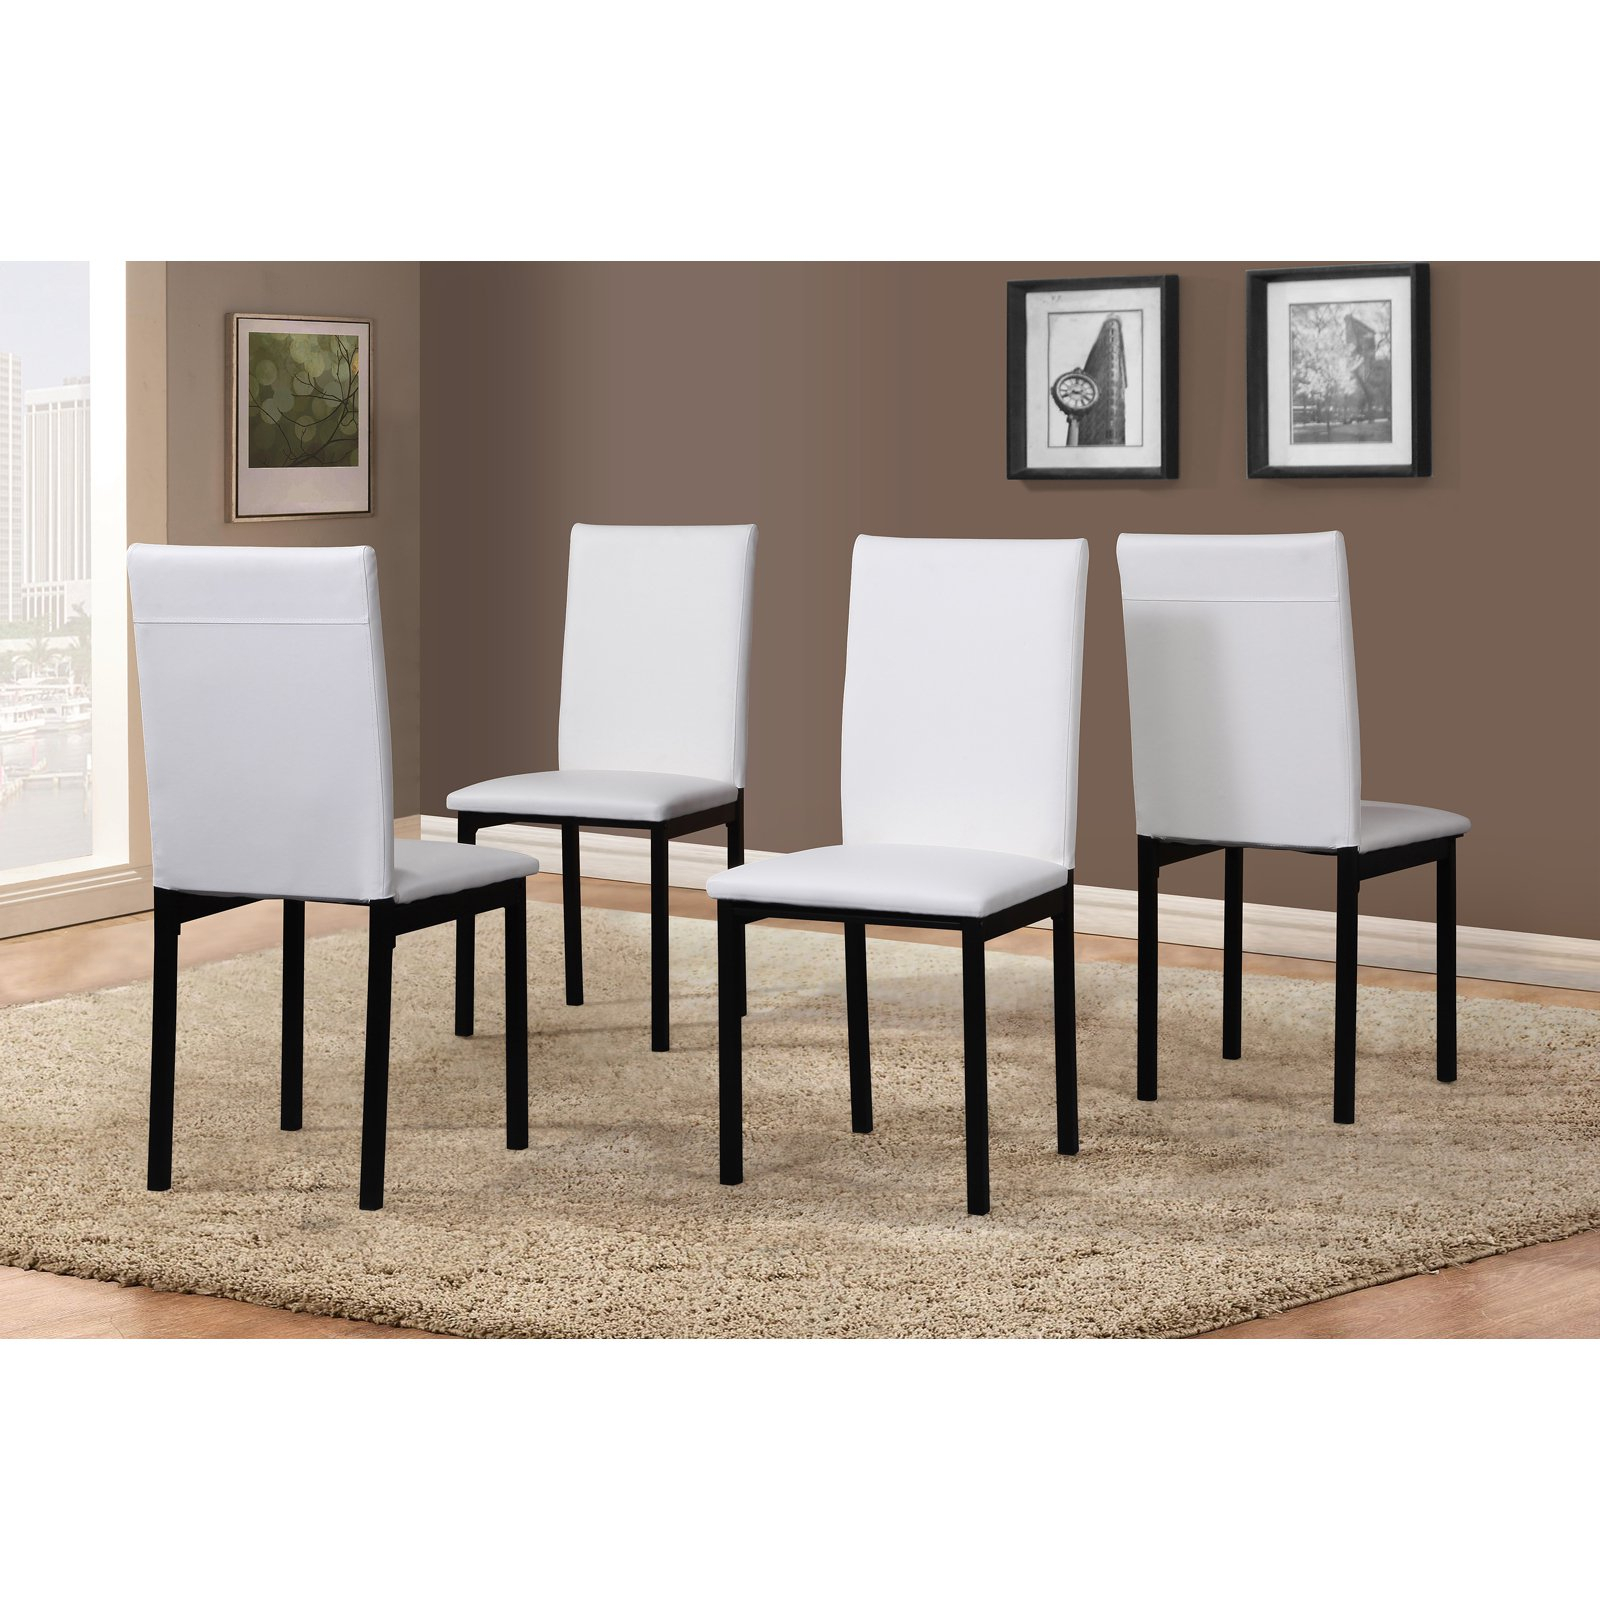 Inspiration about Roundhill Noyes Faux Leather Seat Metal Frame White Dining Chairs Inside Most Recently Released Noyes 5 Piece Dining Sets (#10 of 20)